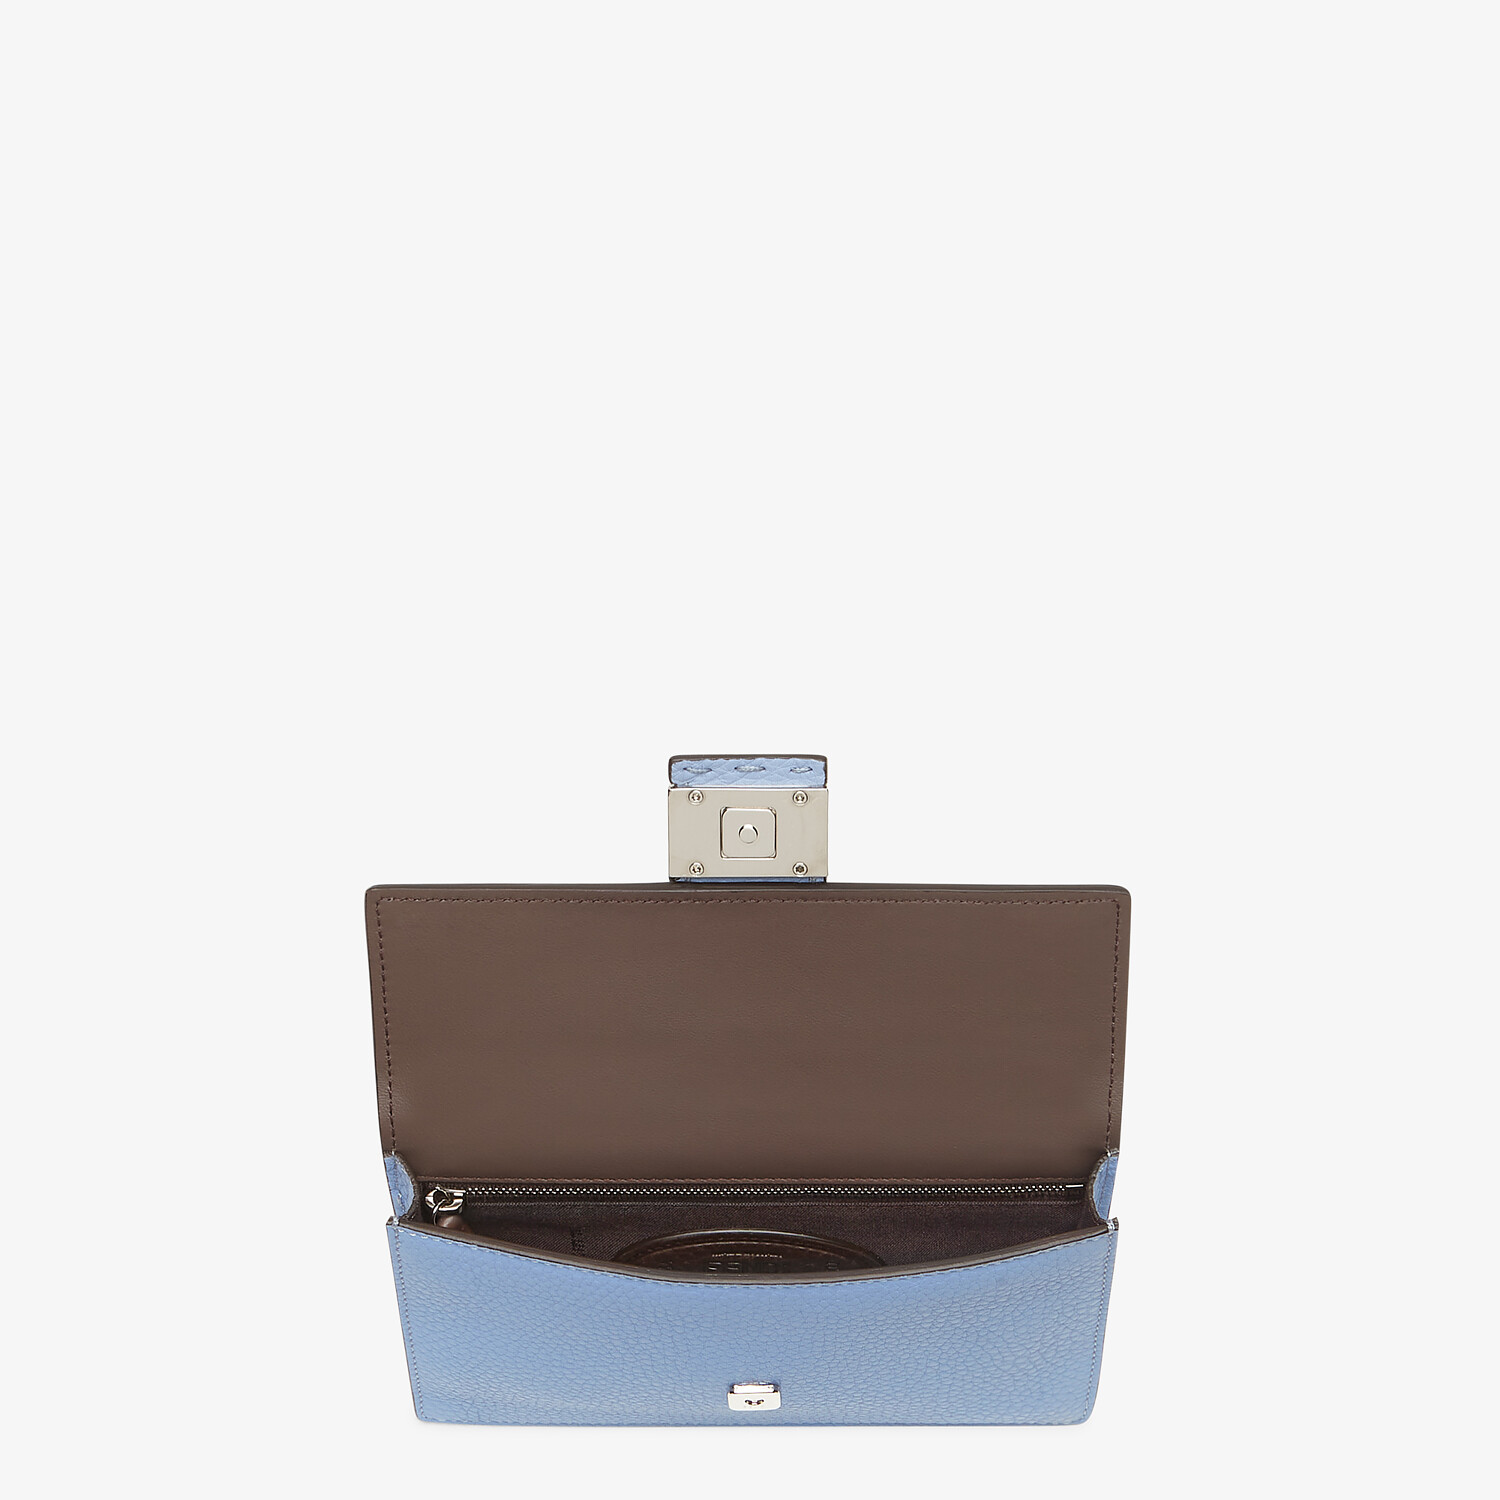 FENDI BAGUETTE POUCH - Light blue leather bag - view 4 detail